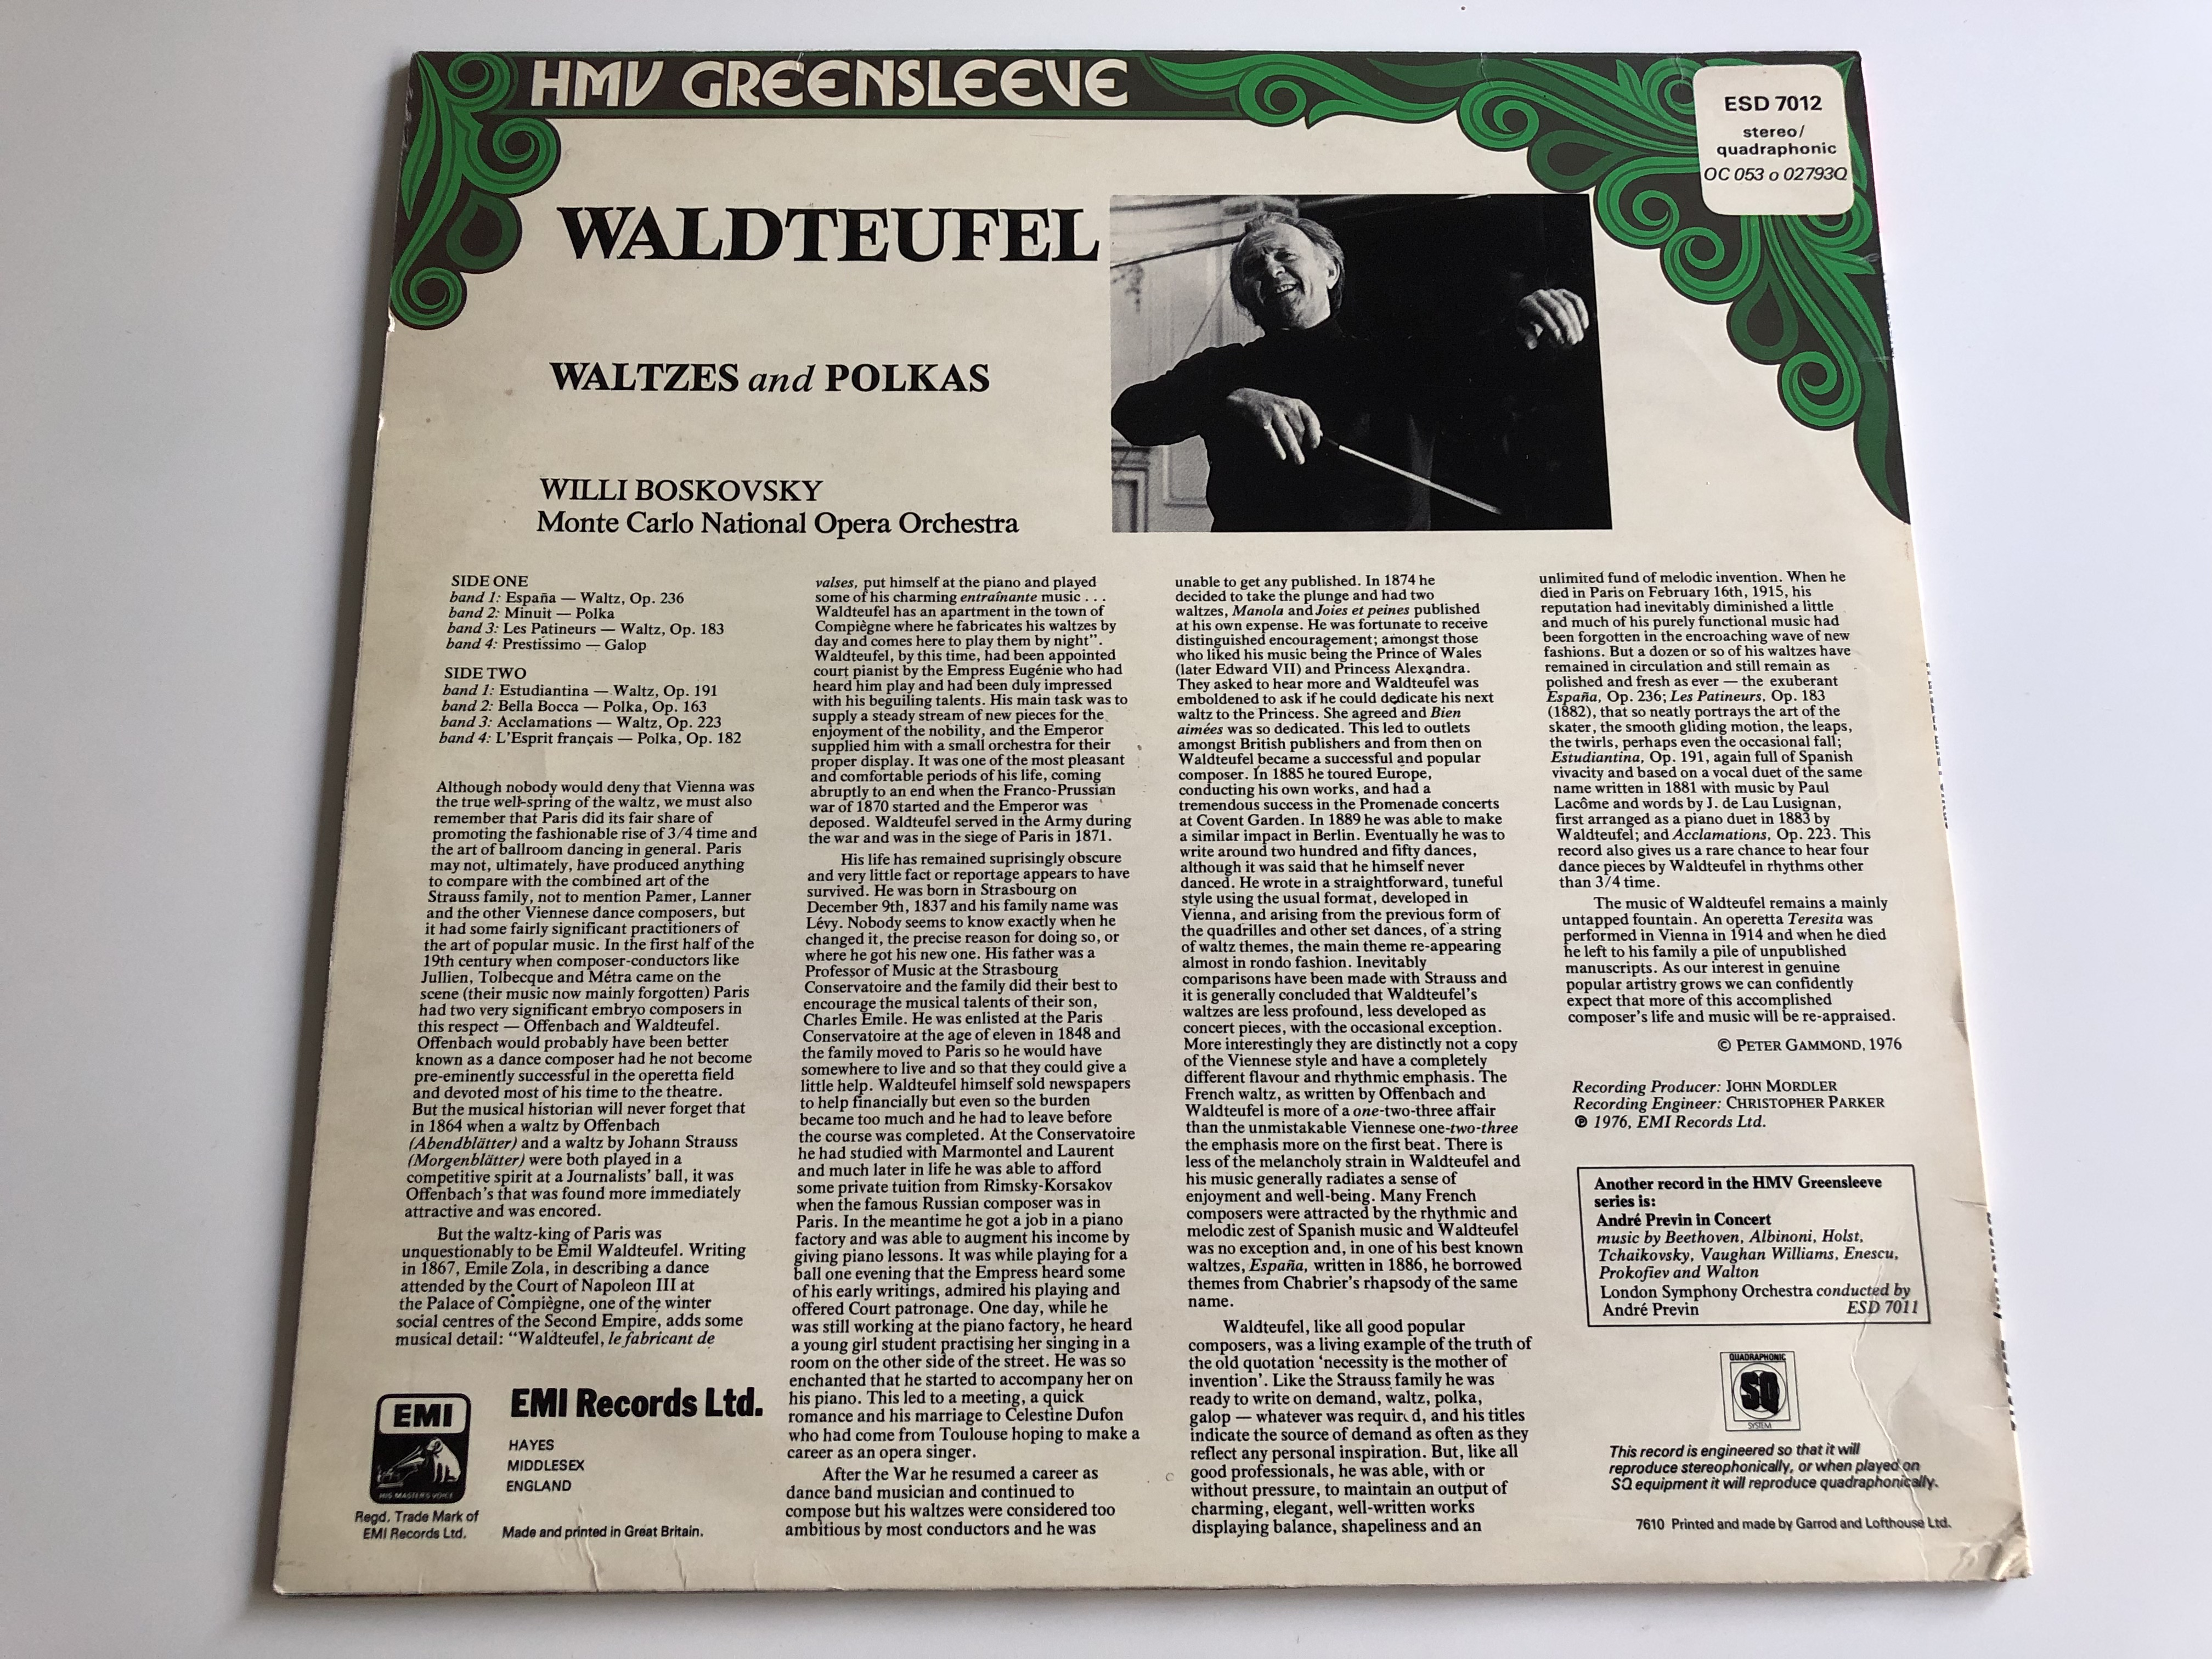 waldteufel-waltzes-and-polkas-including-the-skaters-espa-a-estudiantina-minuit-l-esprit-francais-willi-boskovsky-monte-carlo-national-opera-orchestra-emi-records-ltd.-lp-stereo-quadraphon.jpg